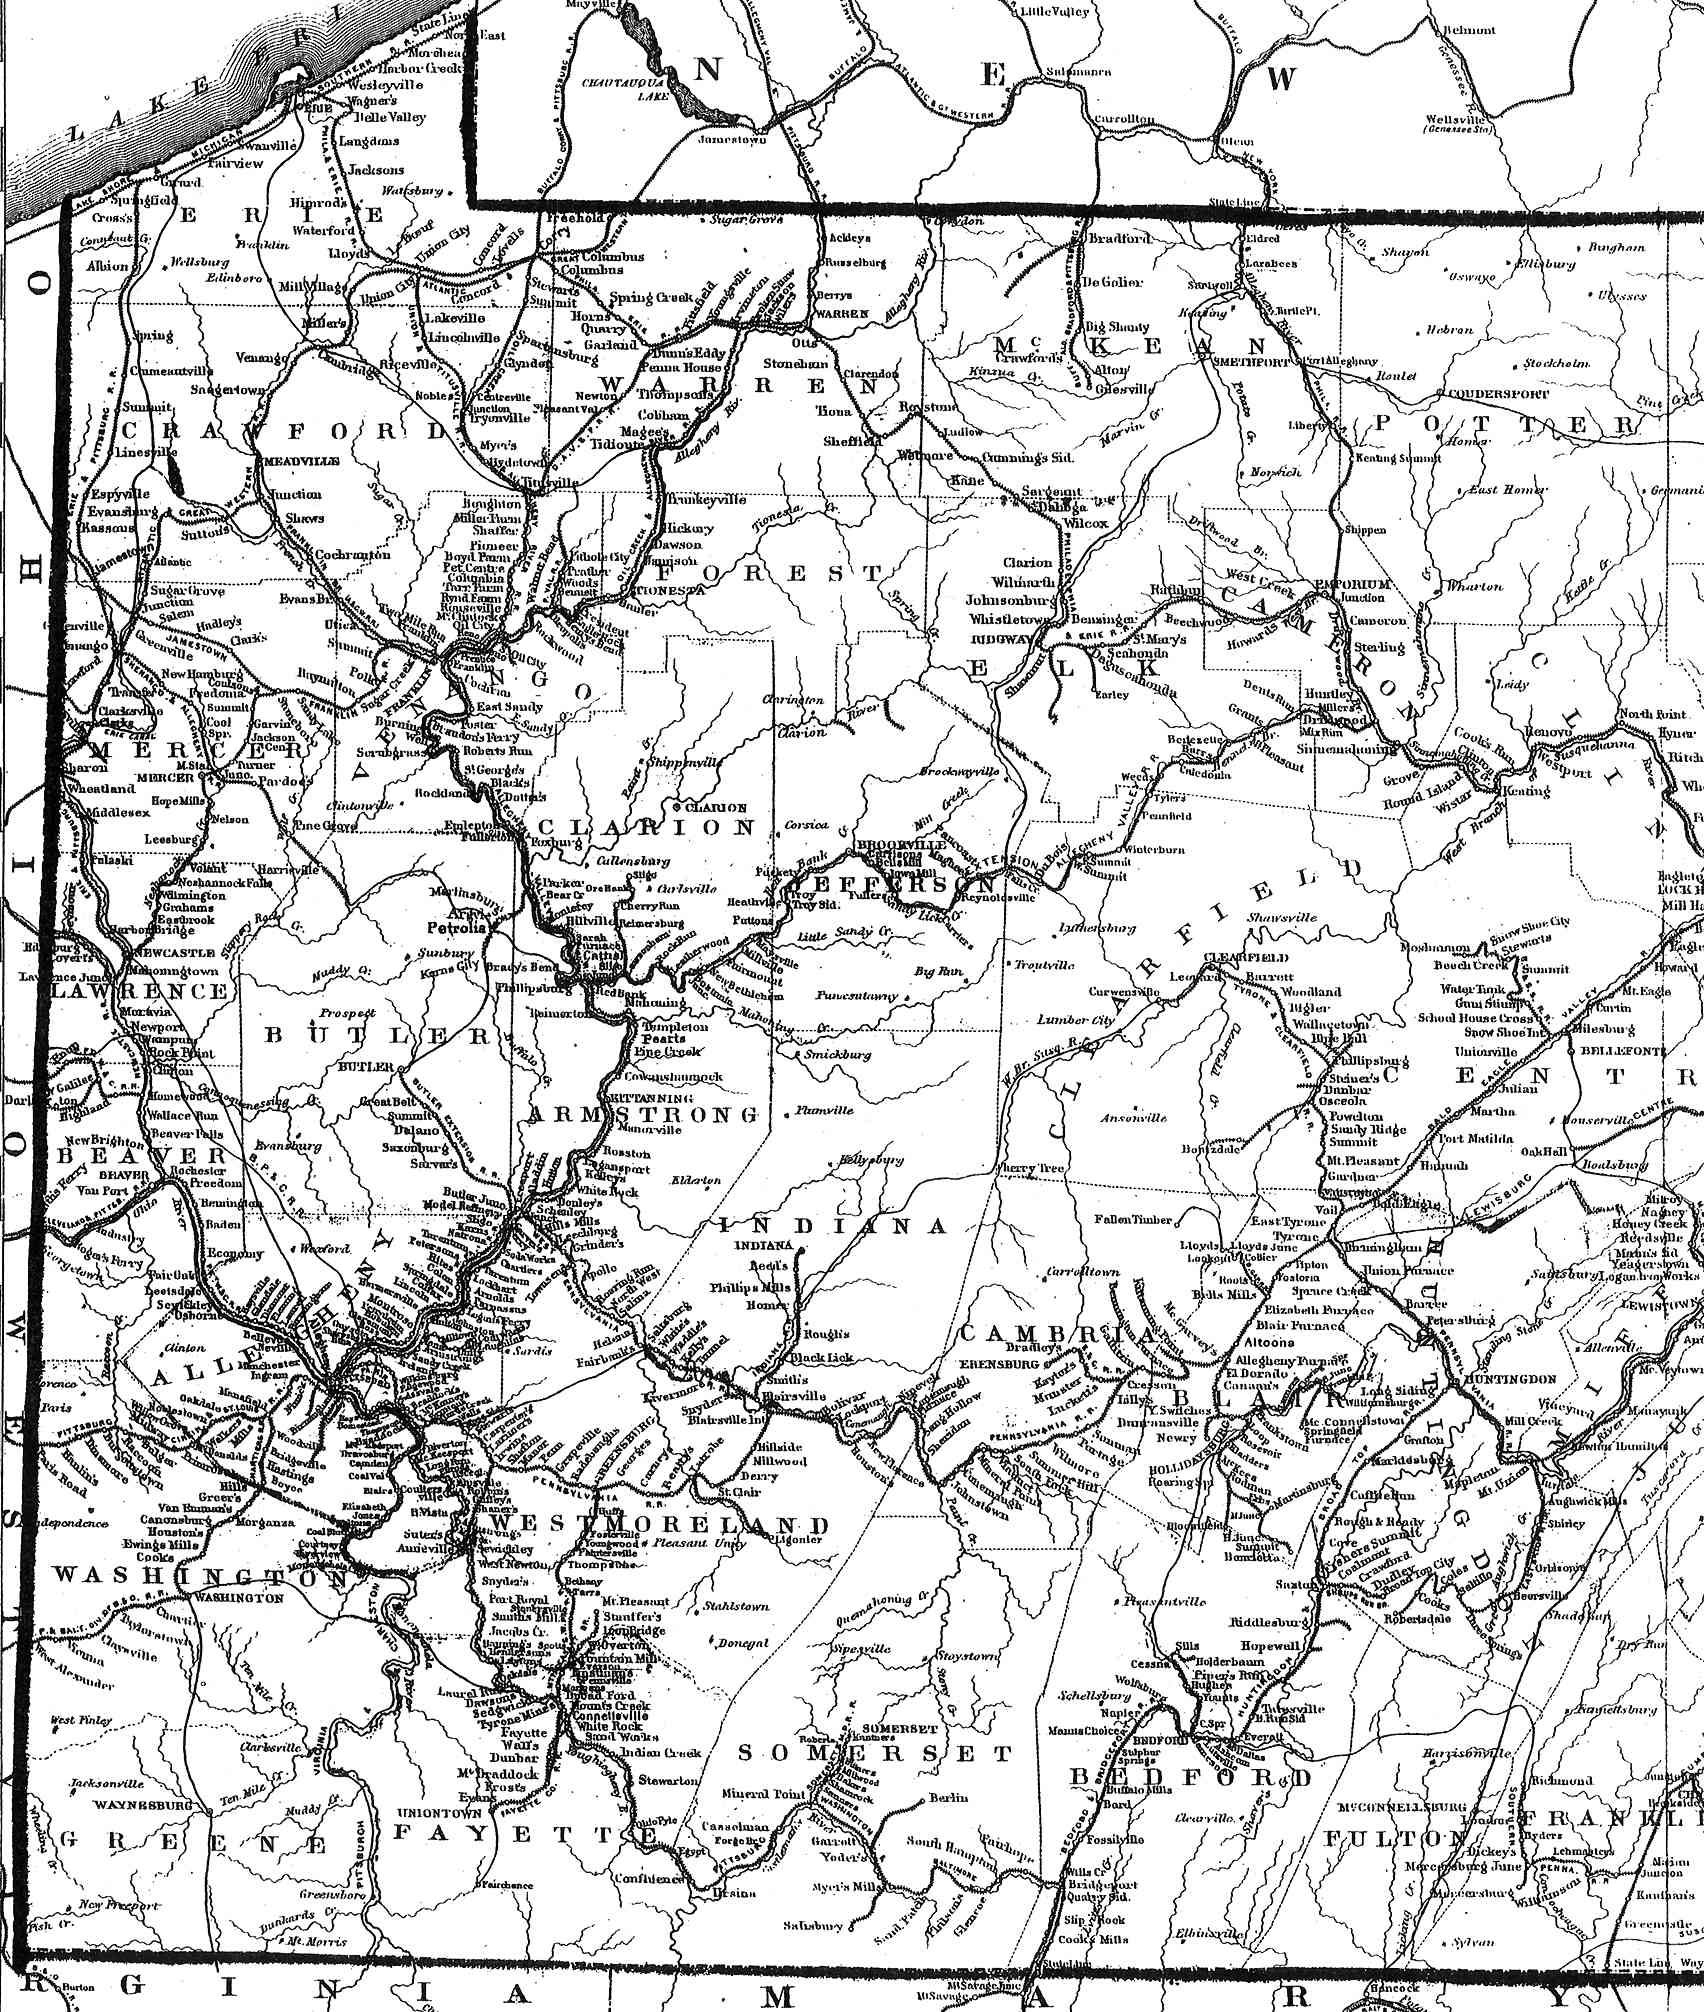 Pennsylvania County USGS Maps - Southwest us county map